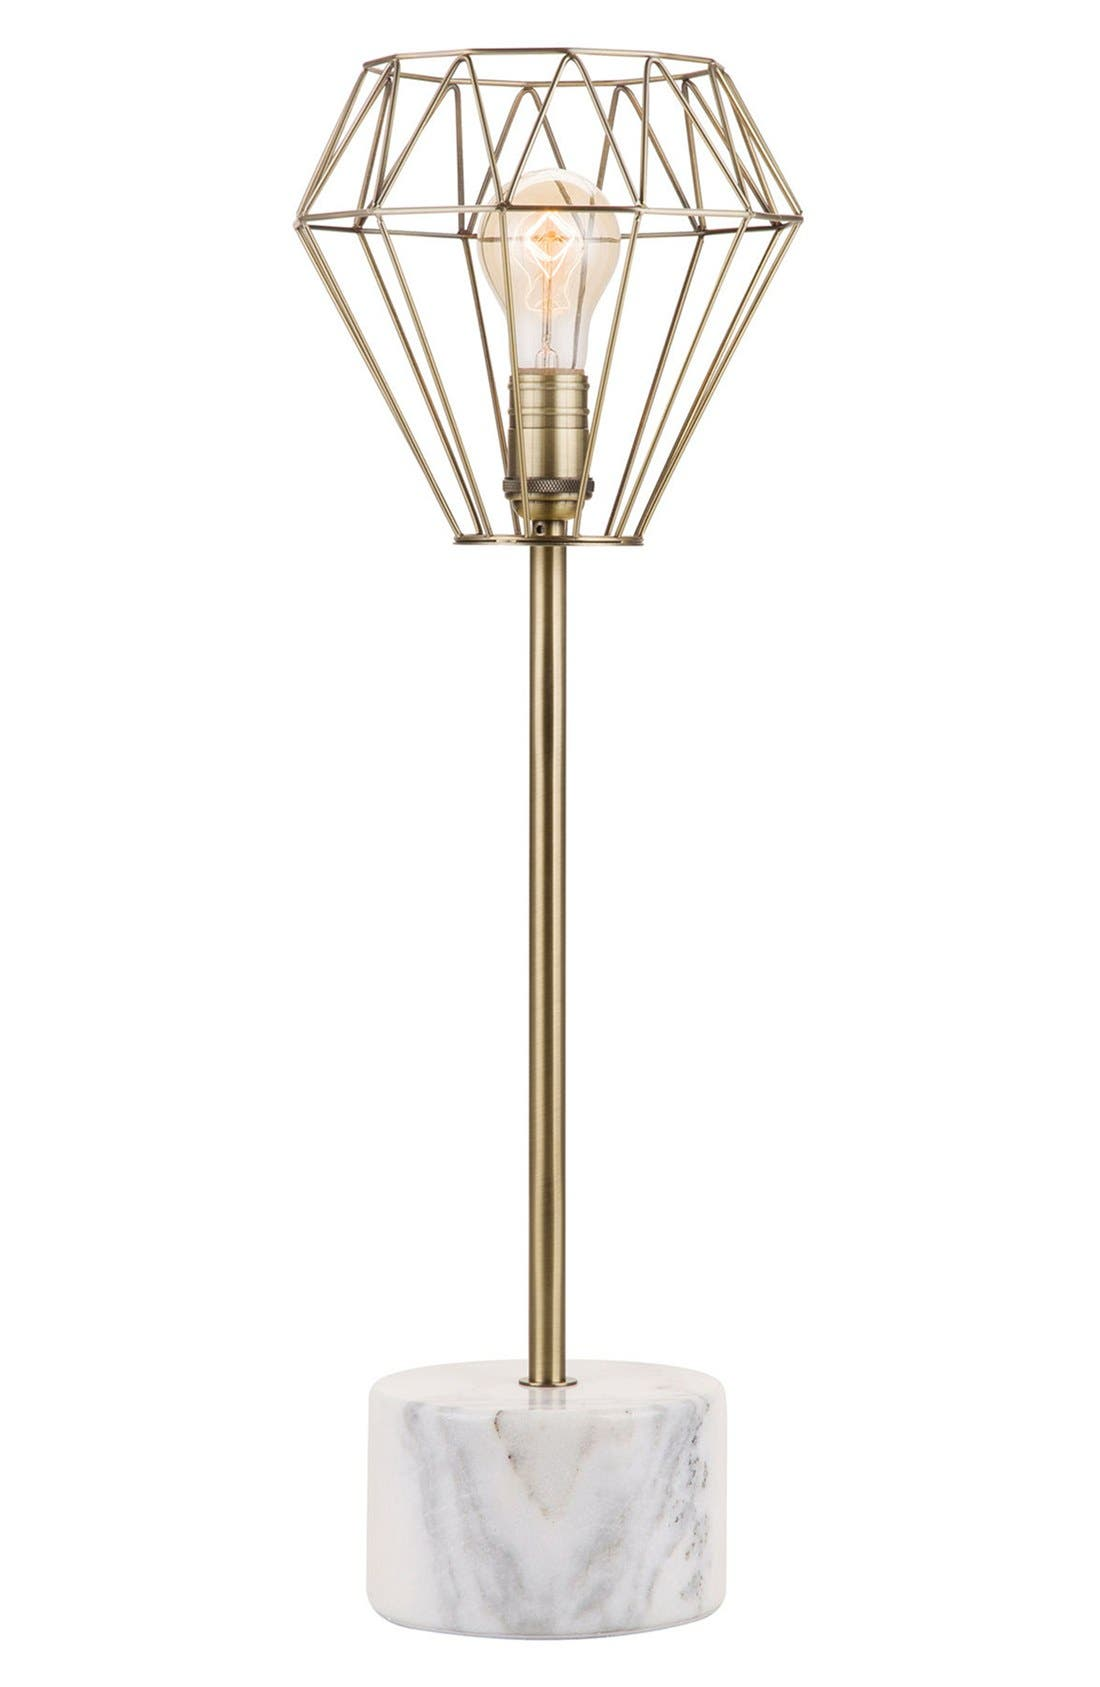 JAlexander Brass & Marble Table Lamp,                             Main thumbnail 1, color,                             710